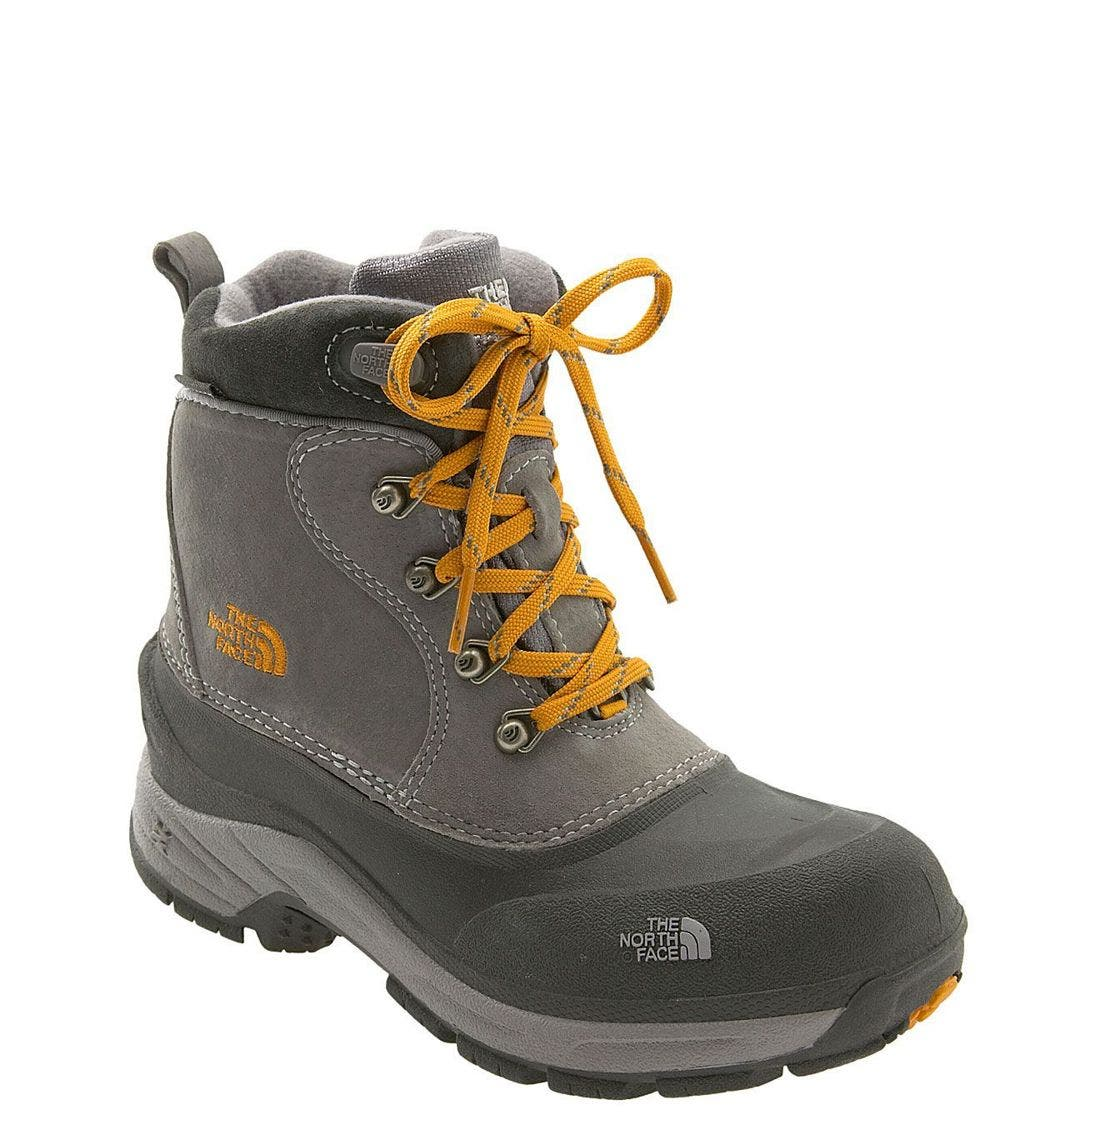 Main Image - The North Face 'Chilkats' Boot (Toddler, Little Kid & Big Kid)